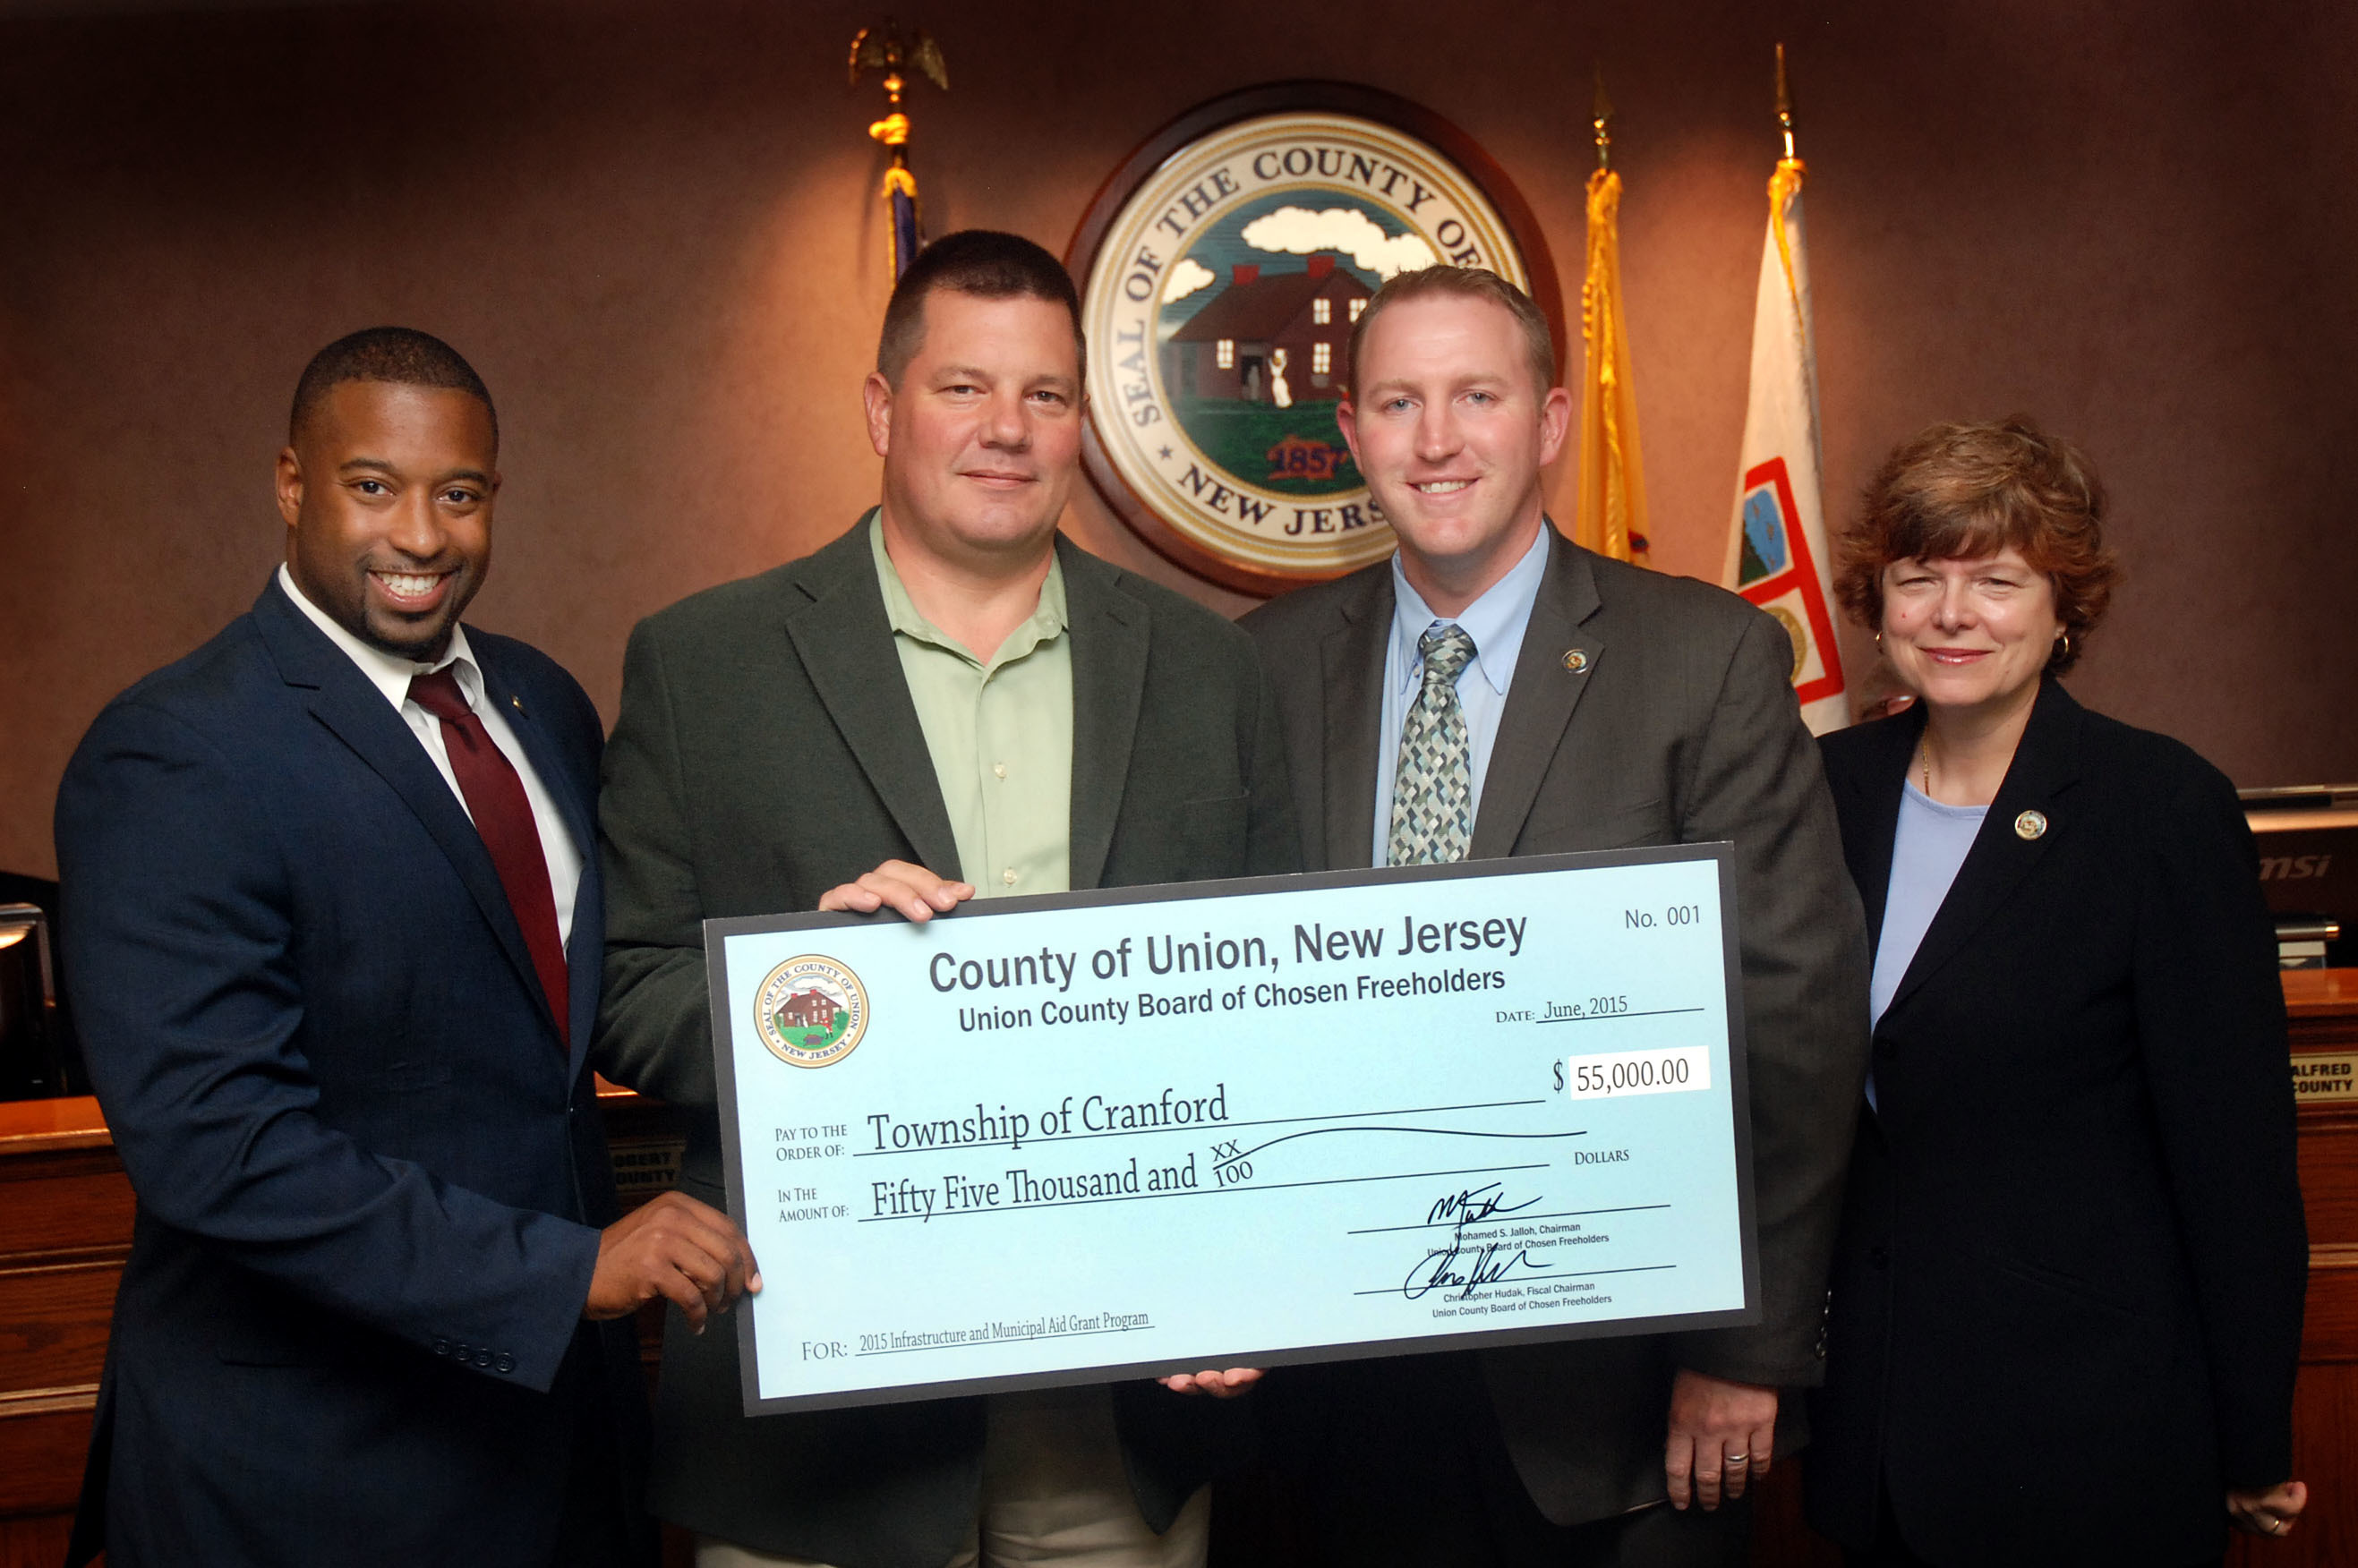 New jersey union county cranford - Union County Nj The Township Of Cranford Was Awarded A 55 000 00 Grant Through The Infrastructure And Municipal Aid Grant By The Union County Board Of